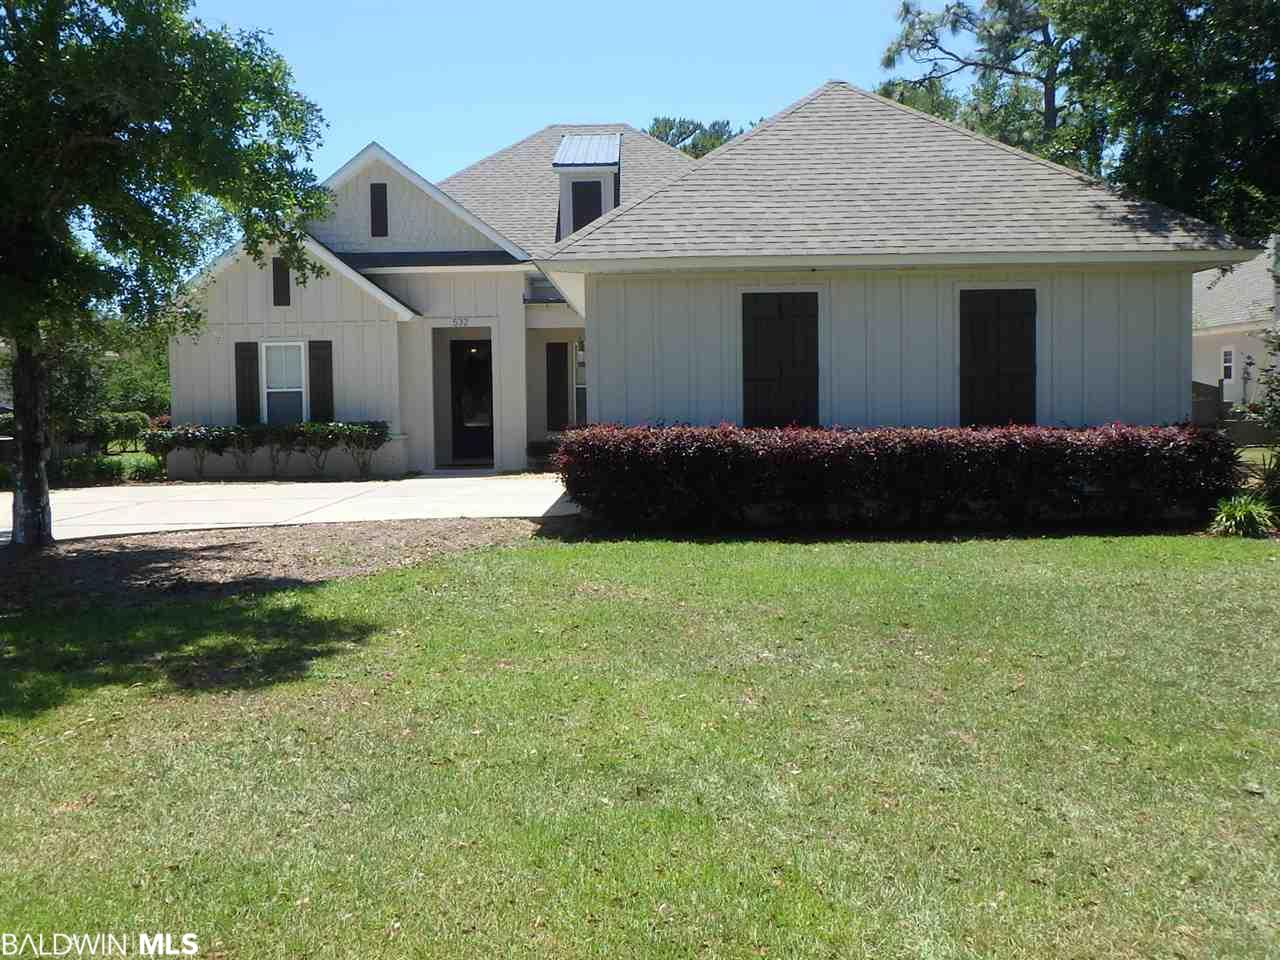 532 Retreat Lane, Gulf Shores, AL 36542